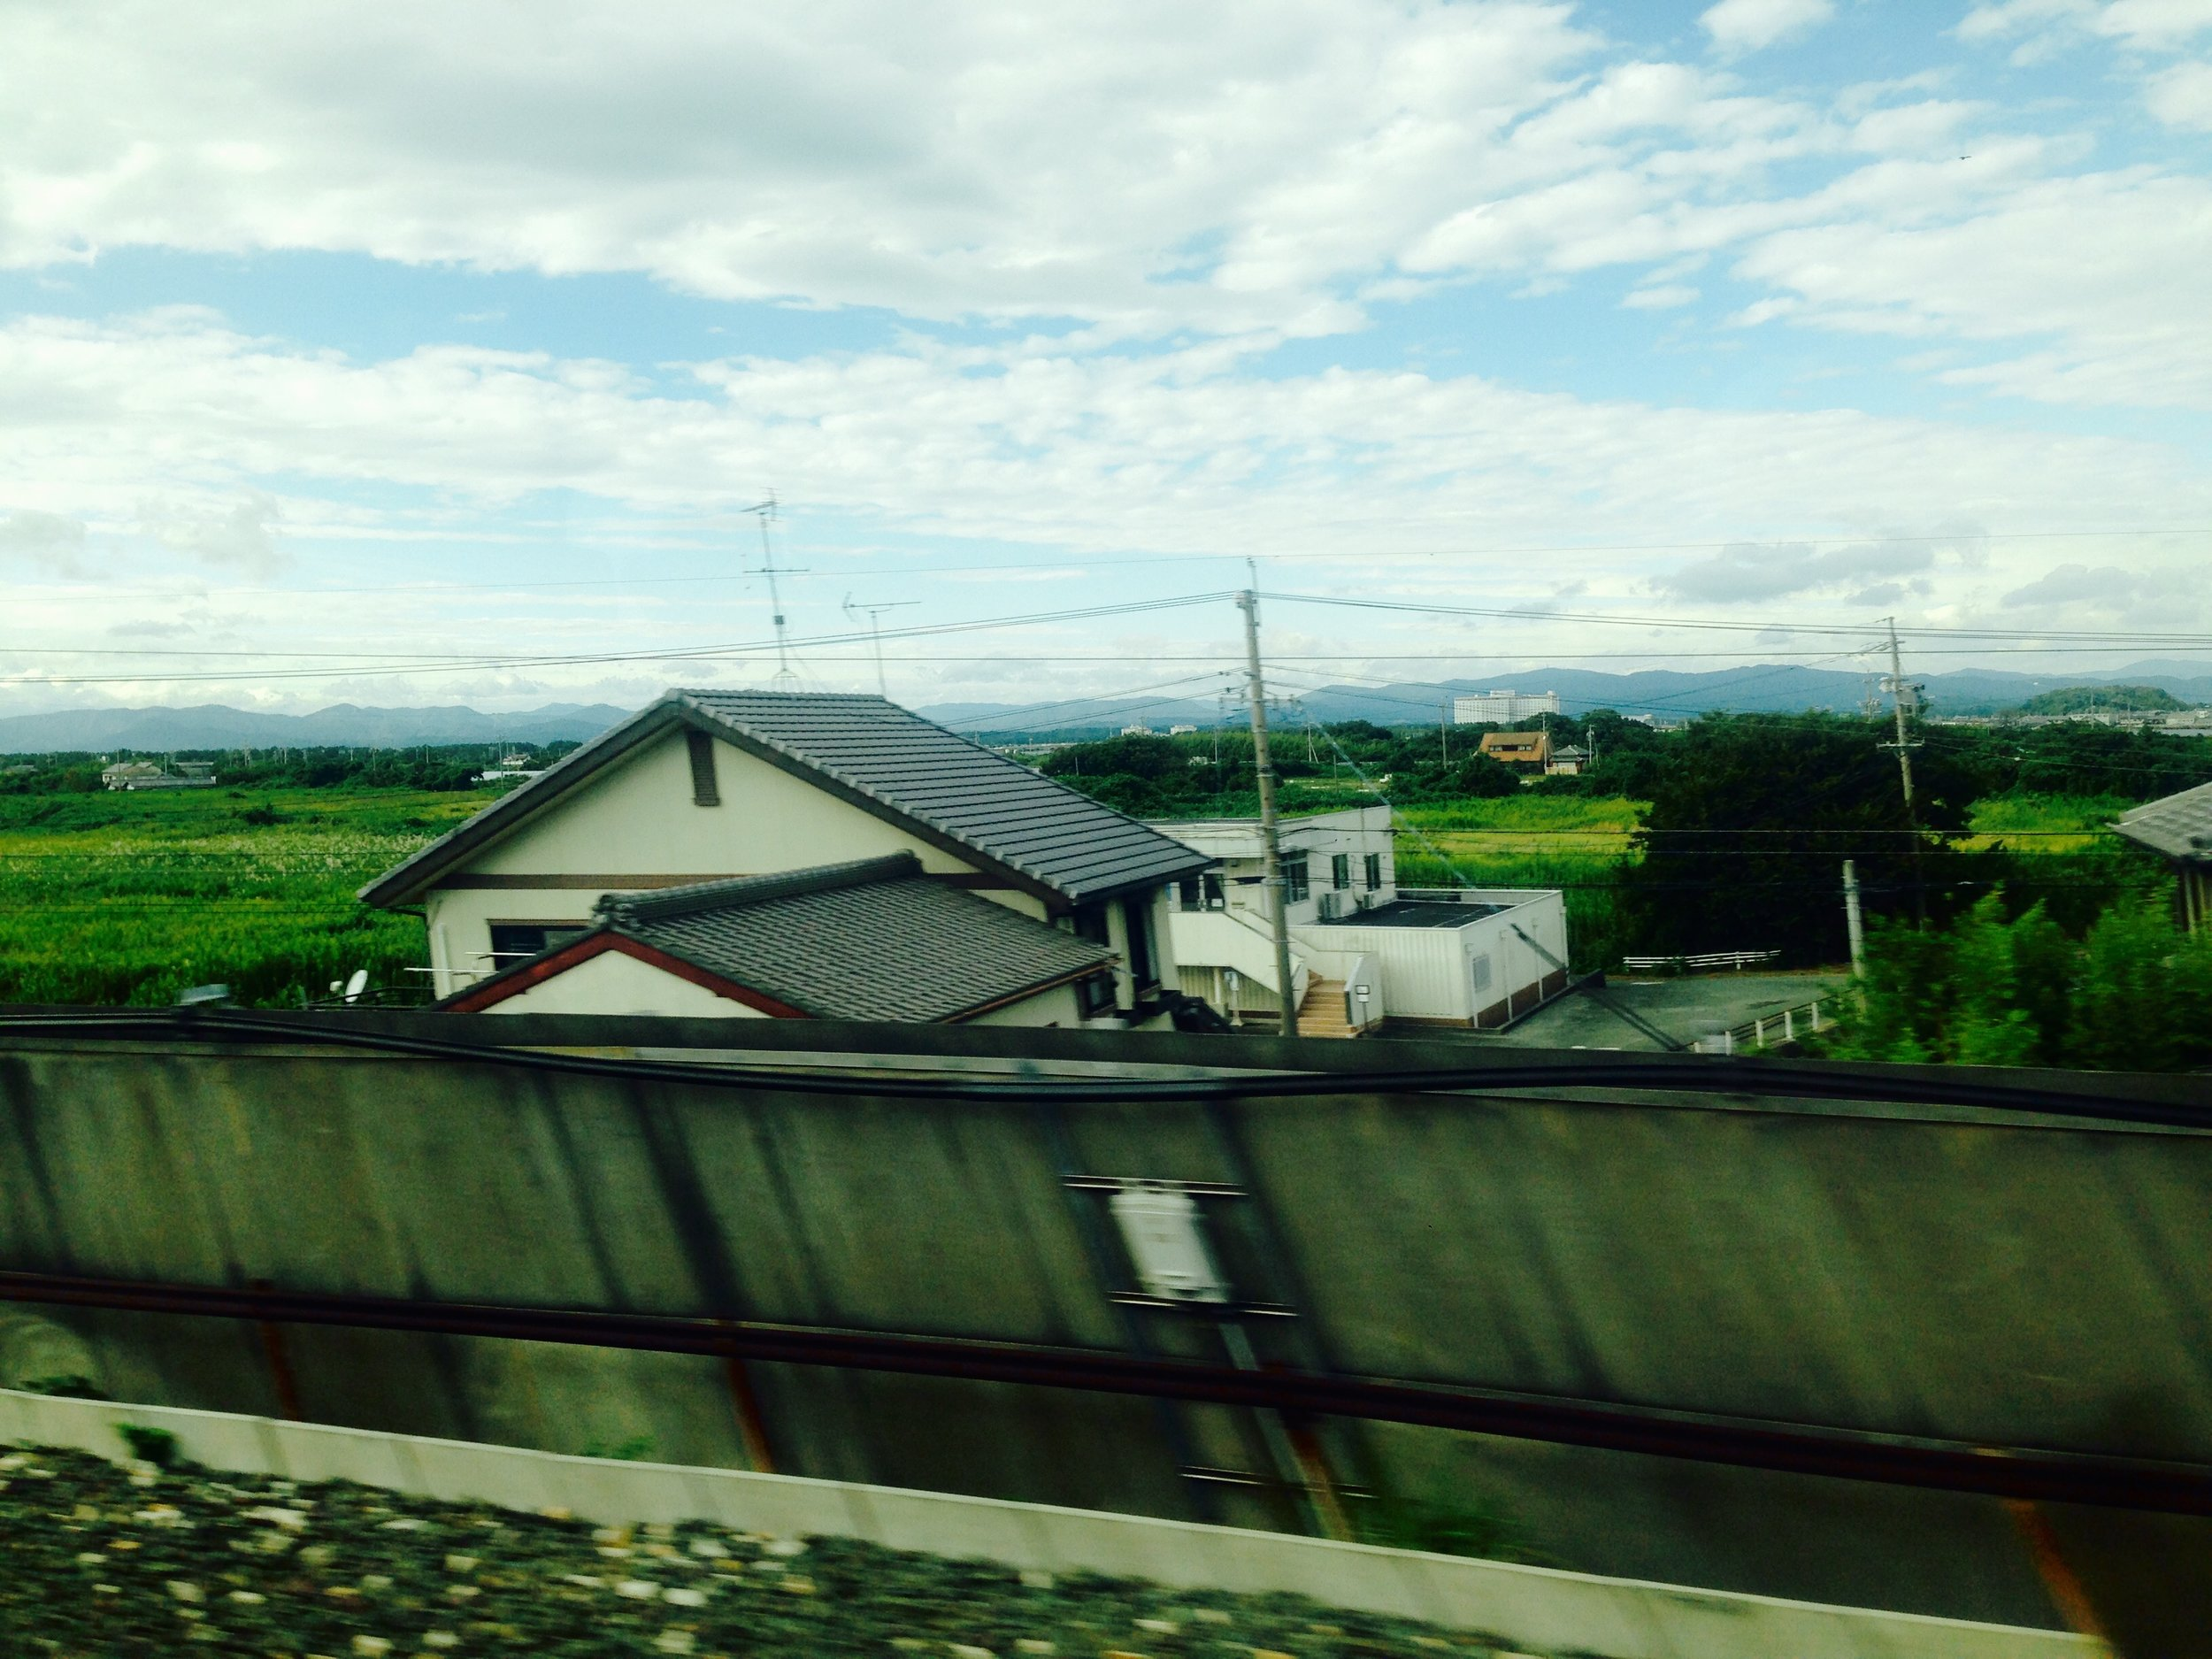 Pocky in my mouth Riding on a bullet train Coming, Kyoto  #haikuforyou